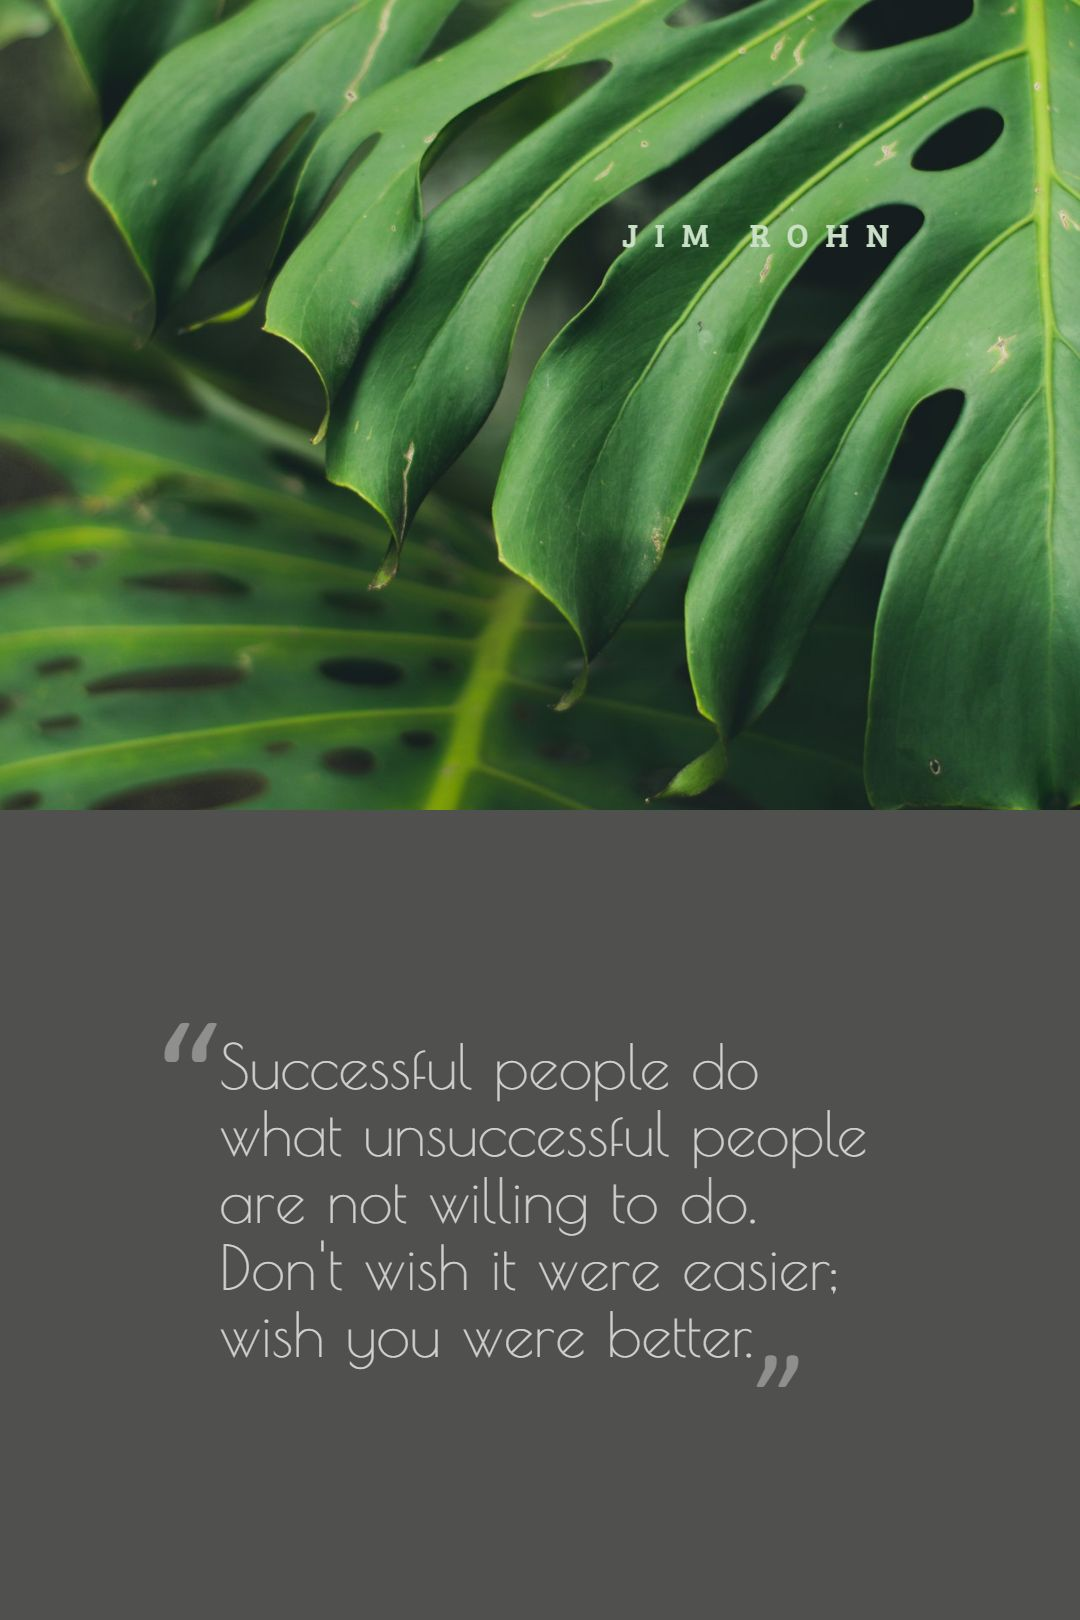 Quotes image of Successful people do what unsuccessful people are not willing to do. Don't wish it were easier; wish you were better.